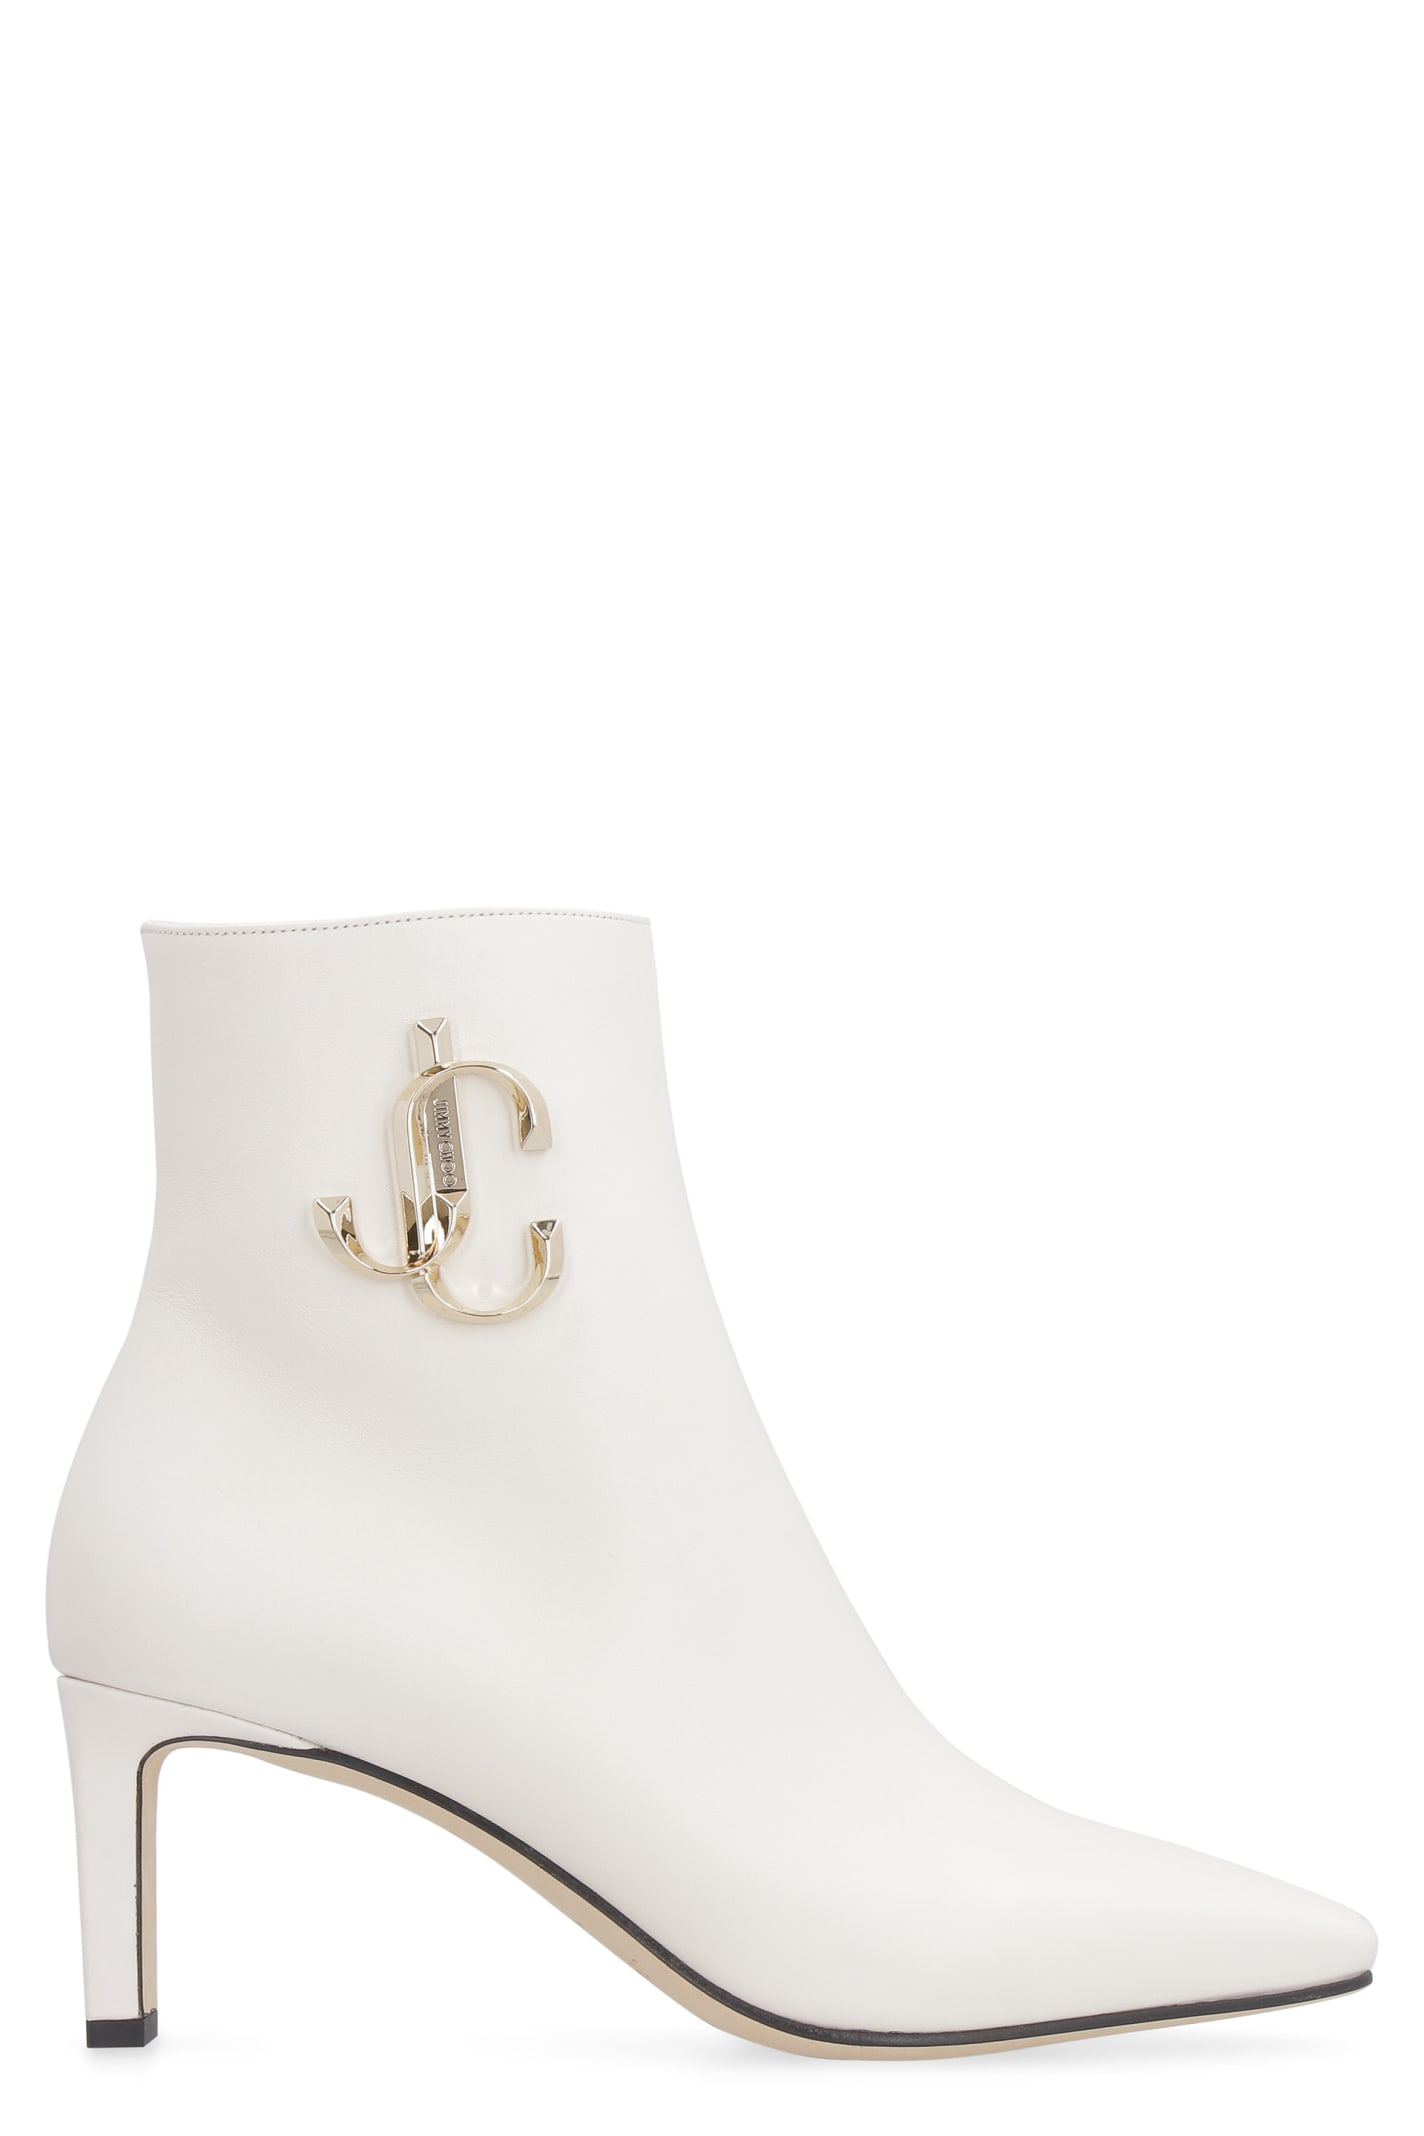 Jimmy Choo Minori Leather Ankle Boots